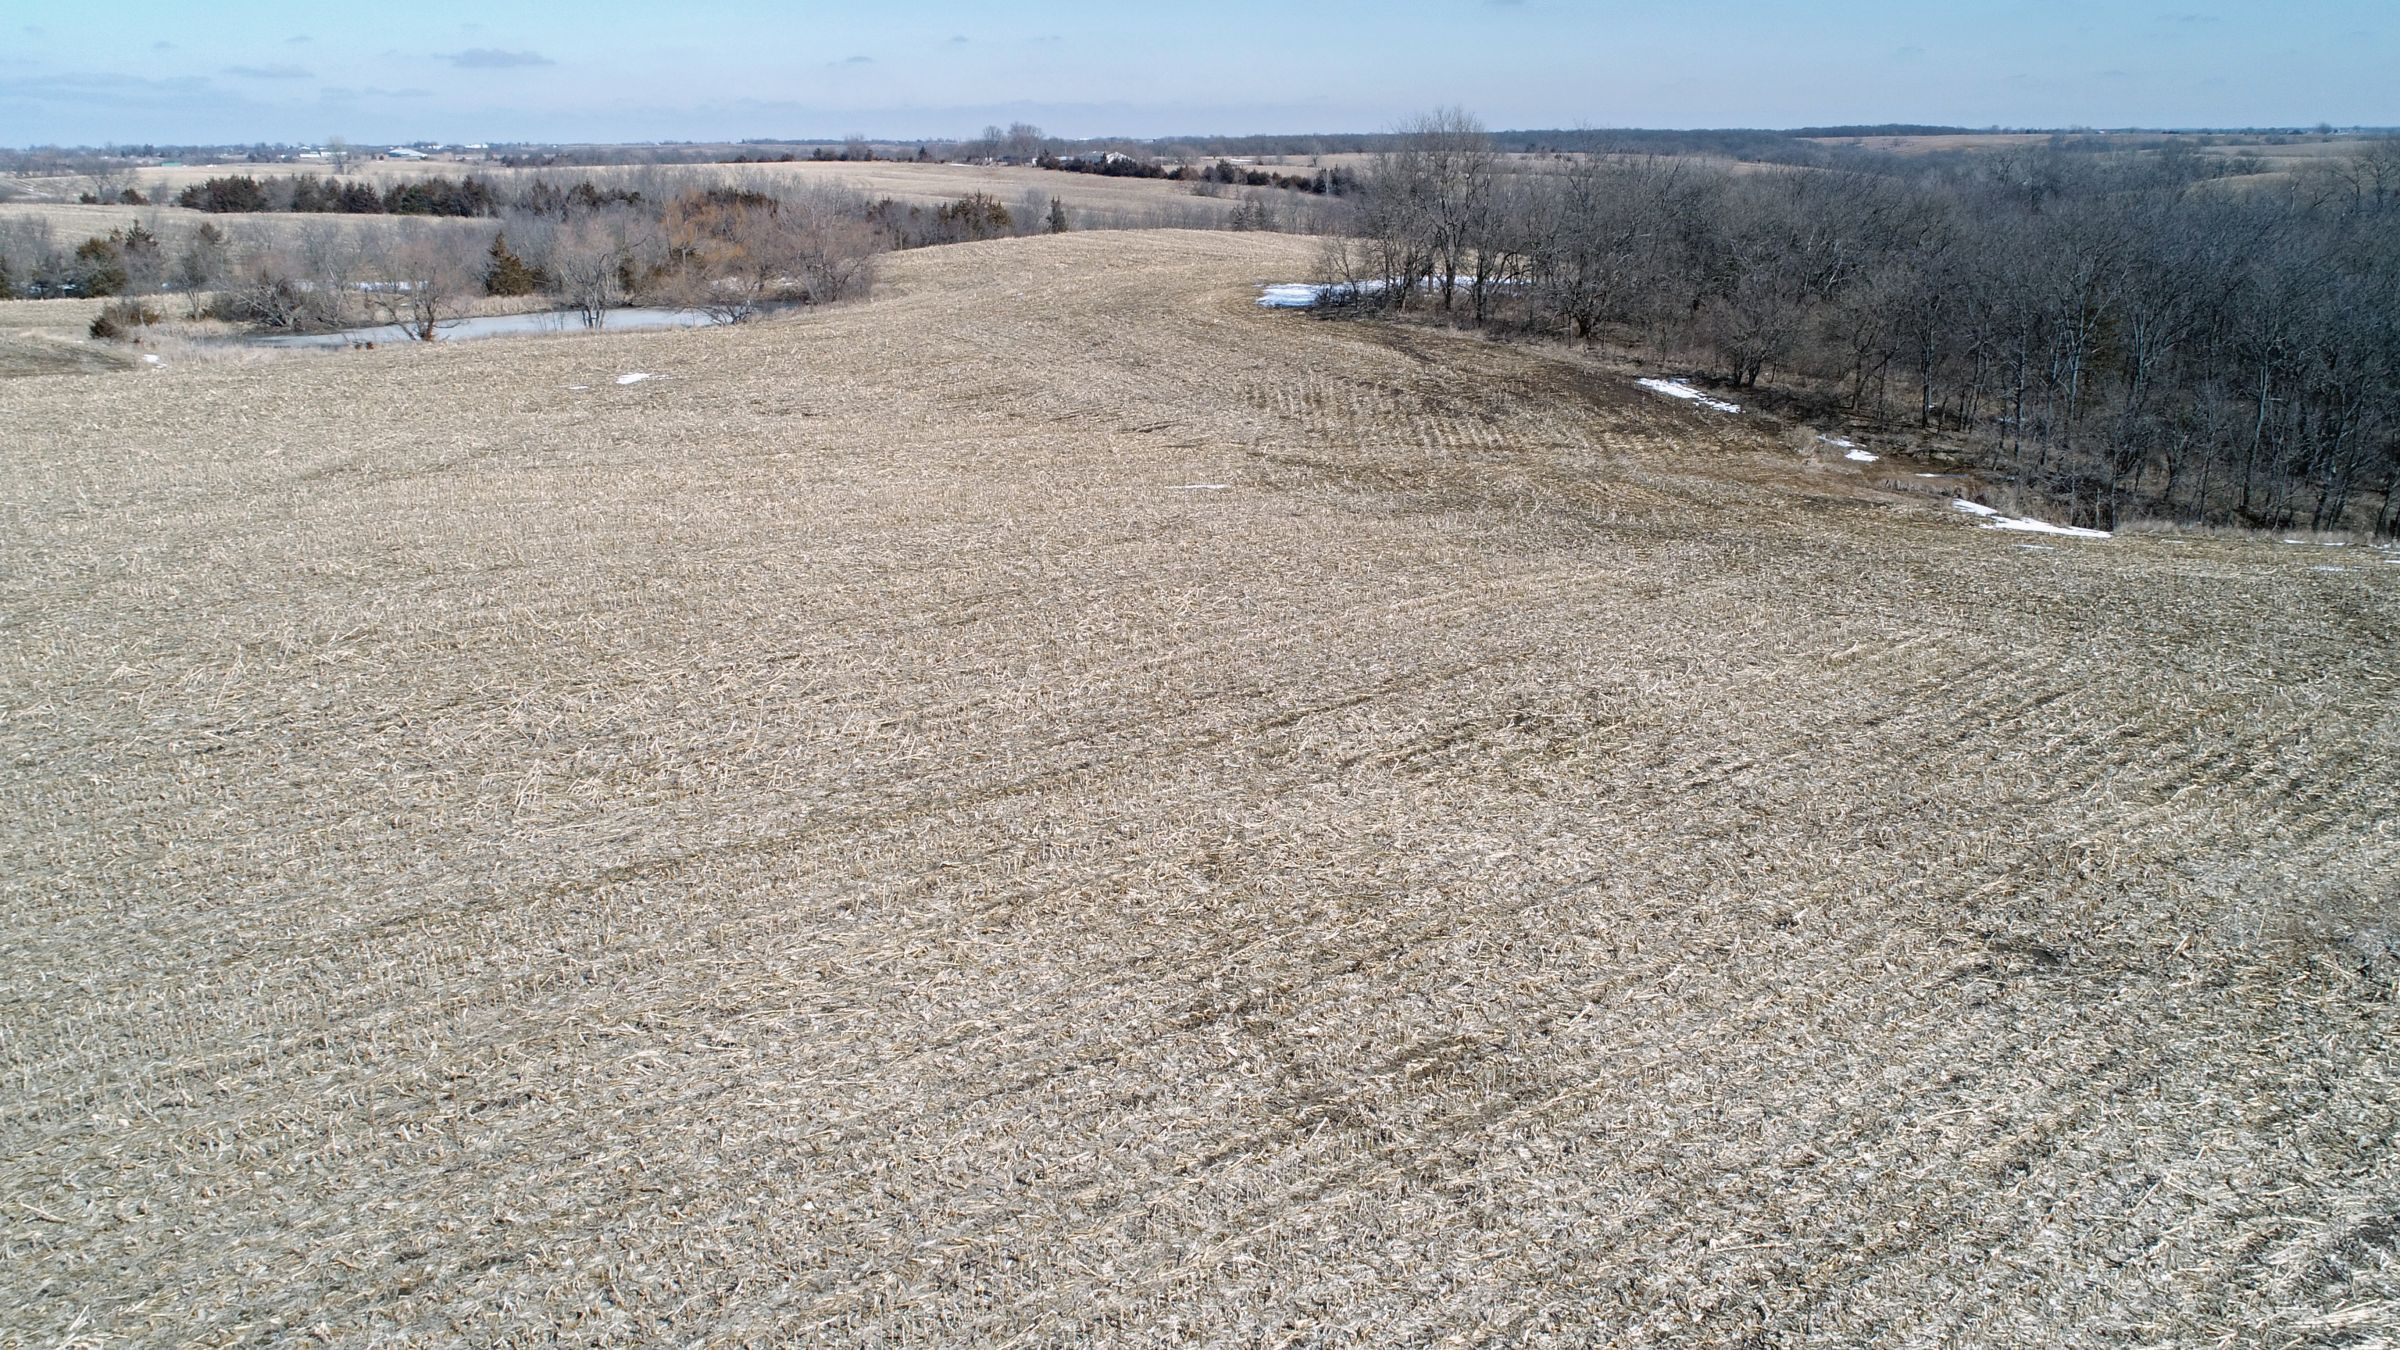 land-lucas-county-iowa-194-acres-listing-number-15385-6-2021-03-02-182634.jpg